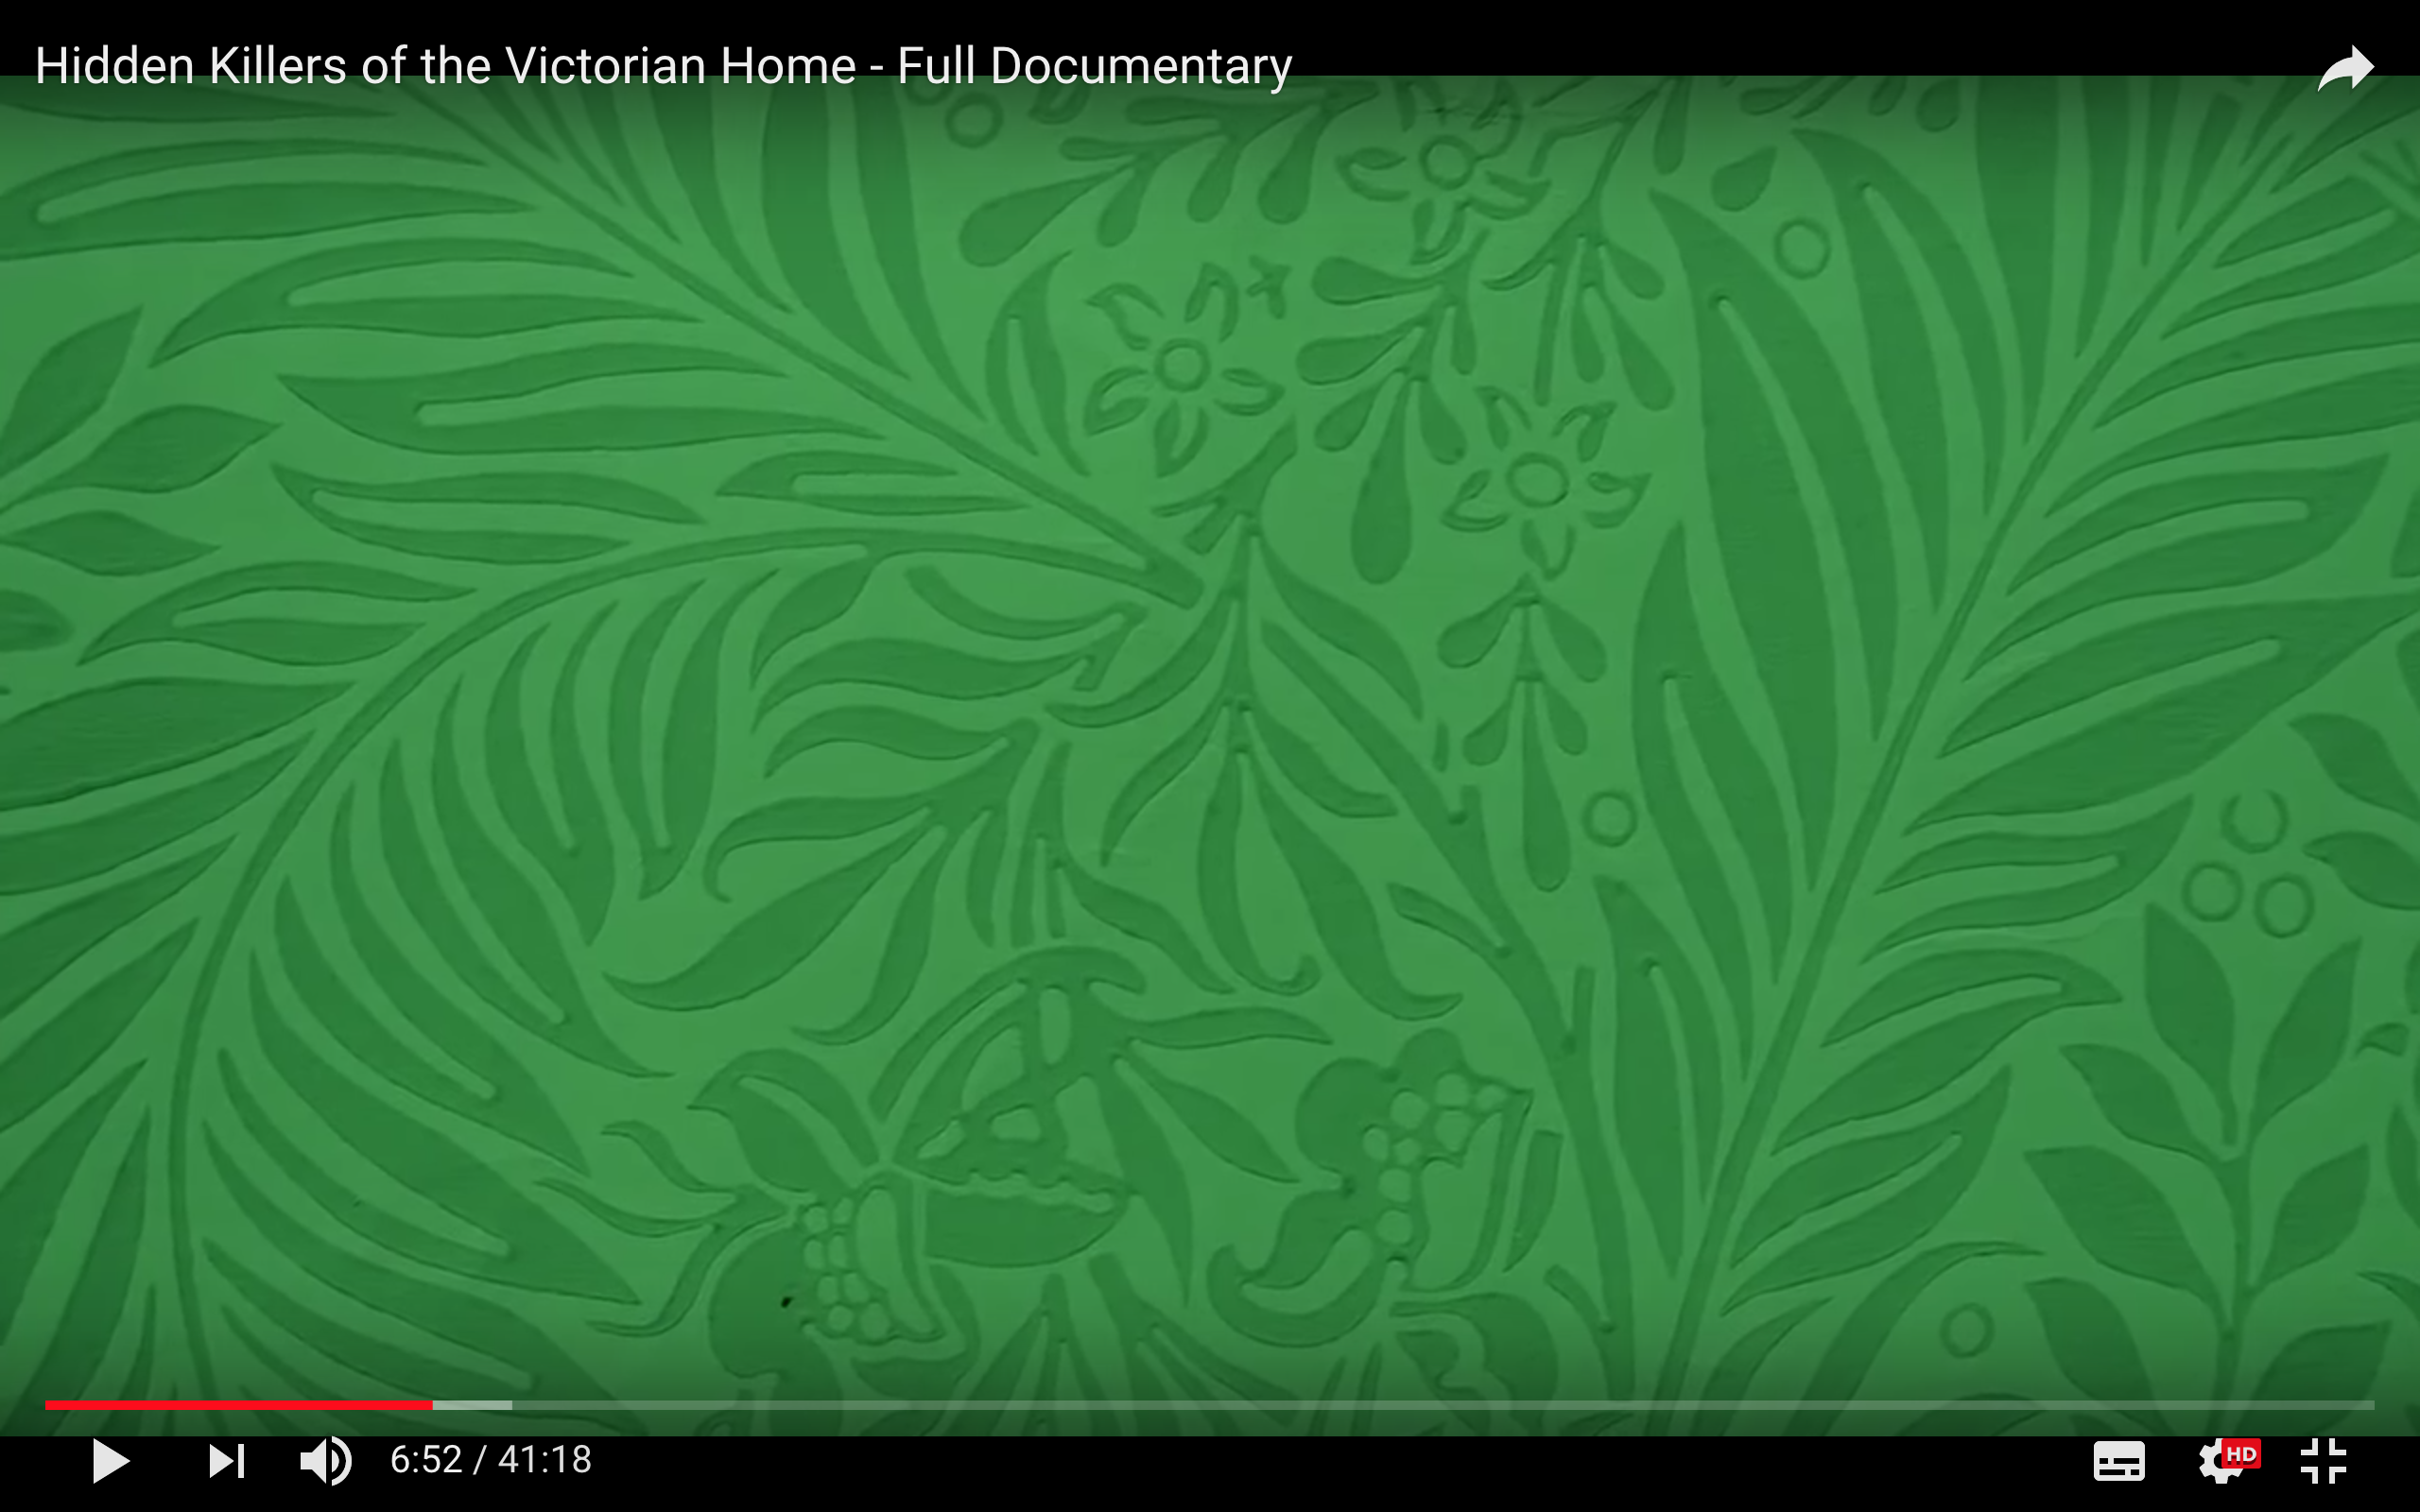 Scheele's Green Victorian Era wallpaper (contained toxic